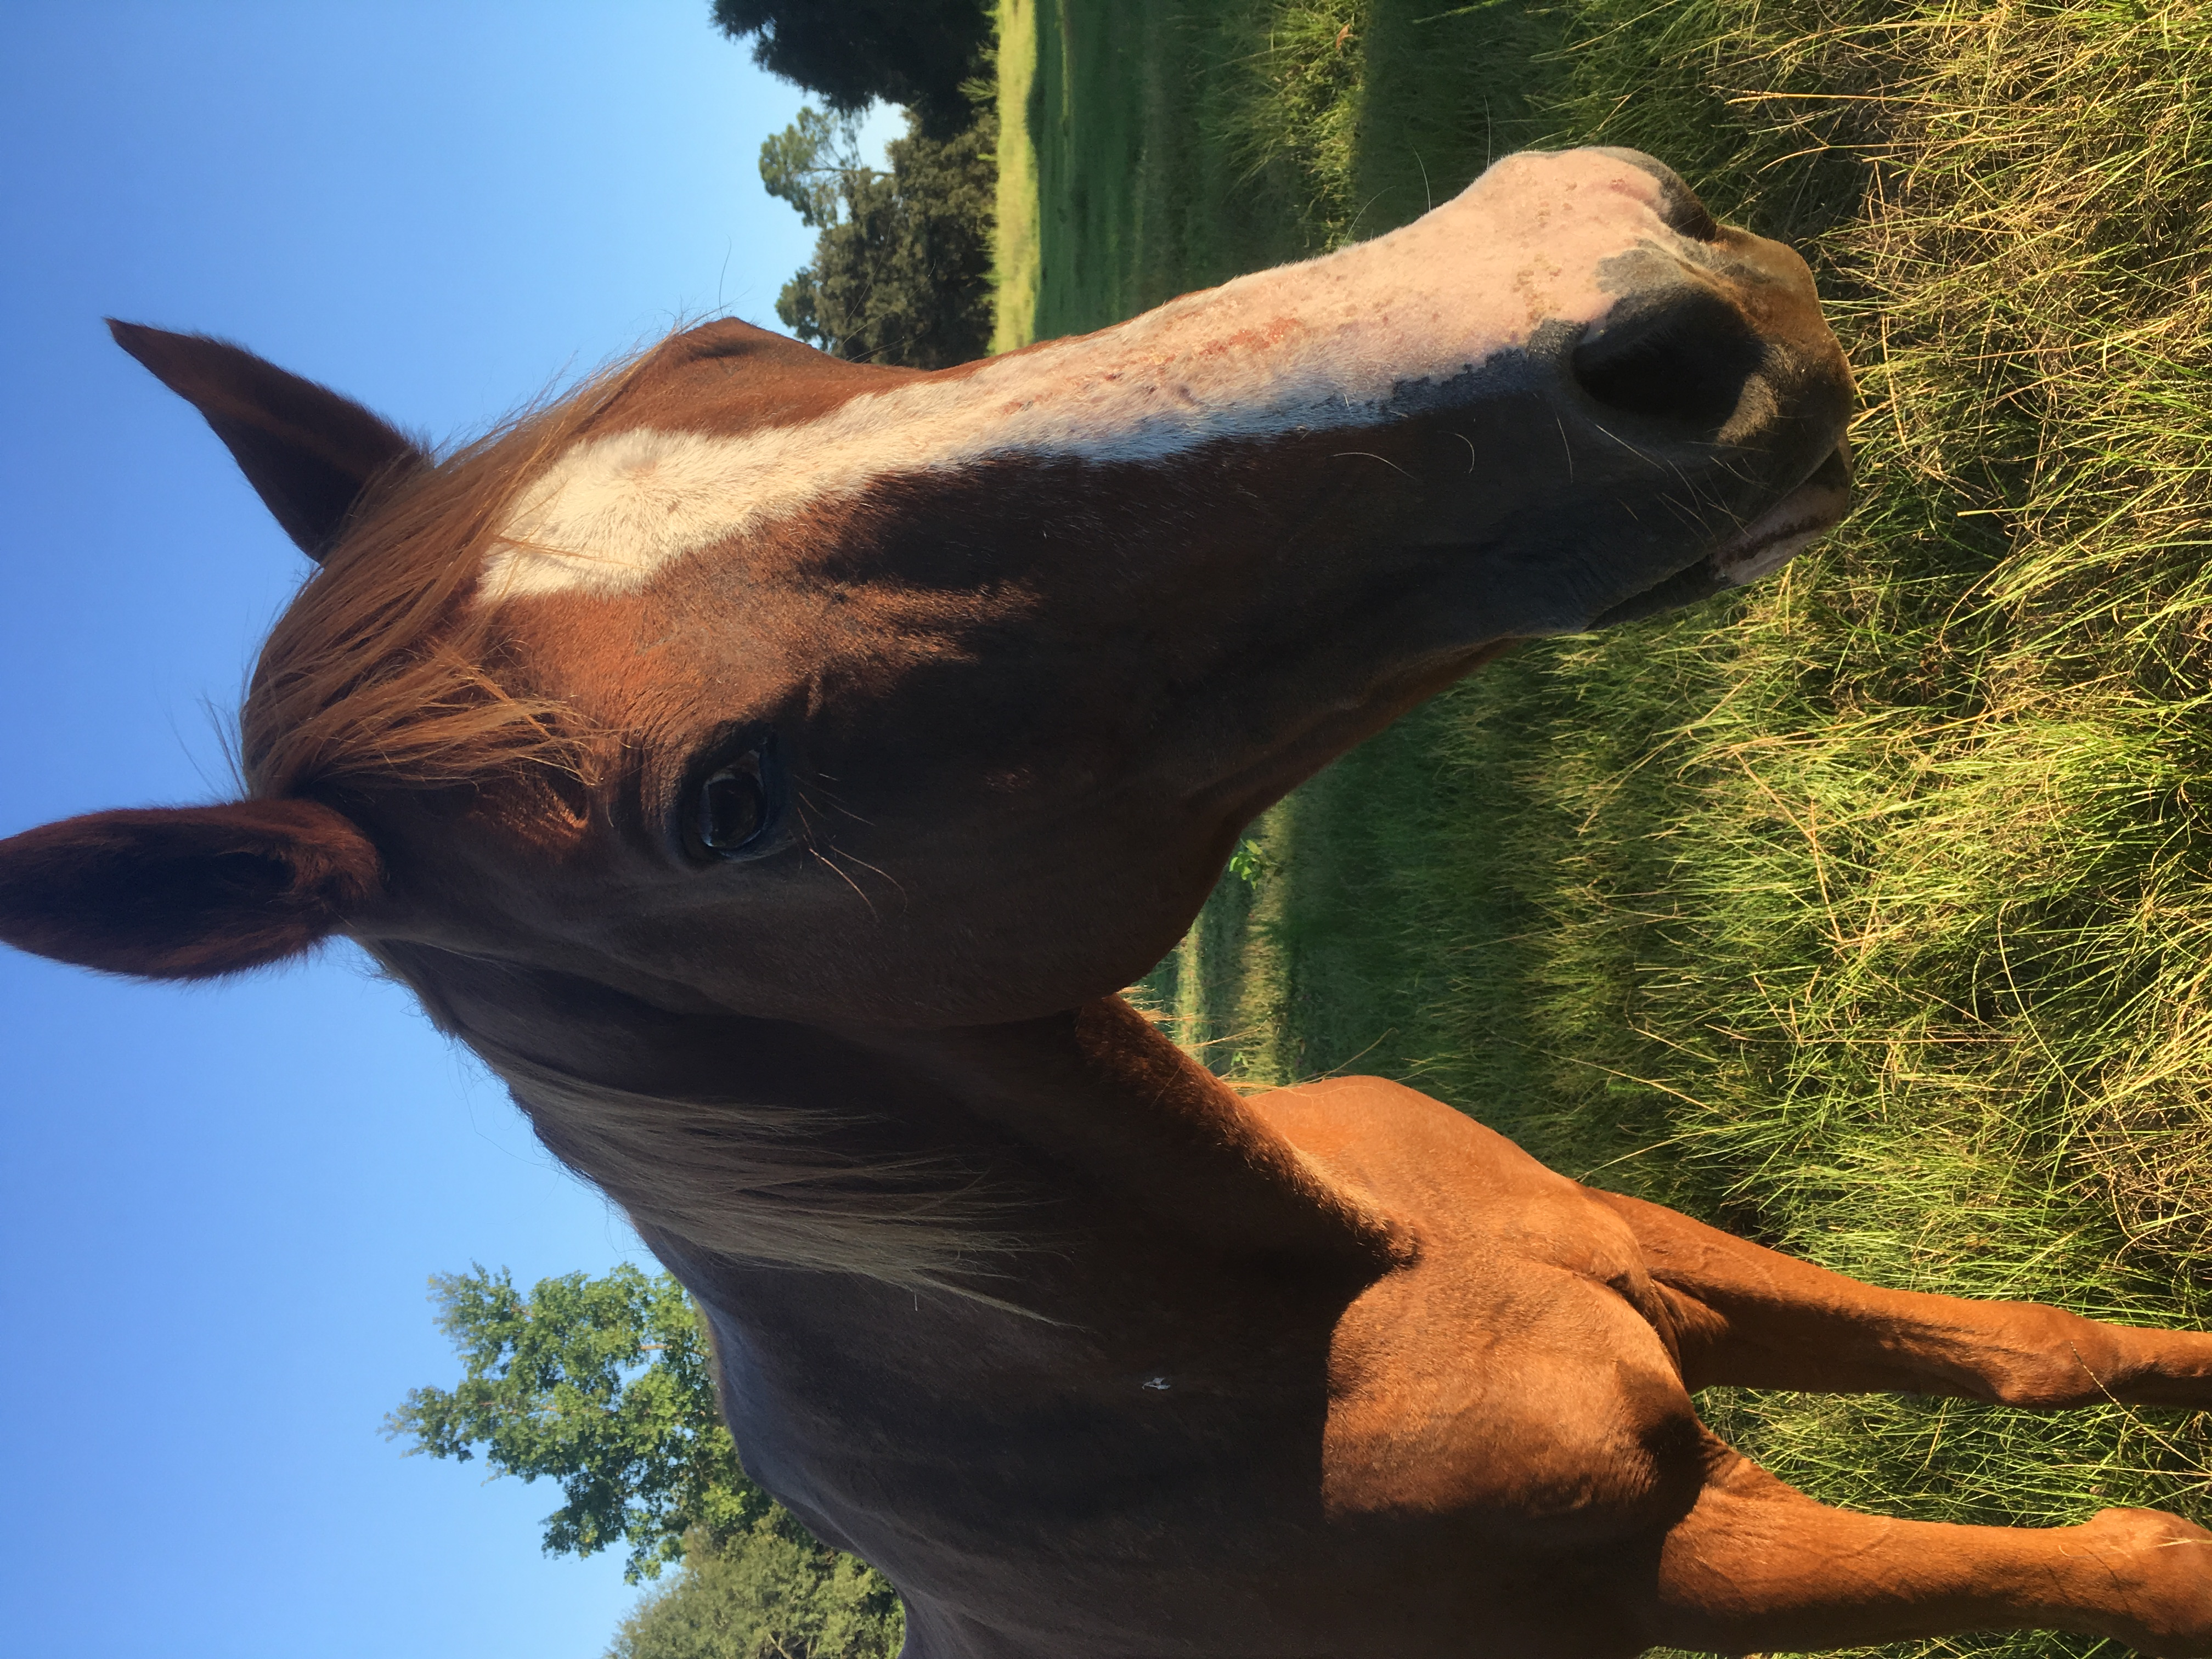 write a detailed sale ad for your horse